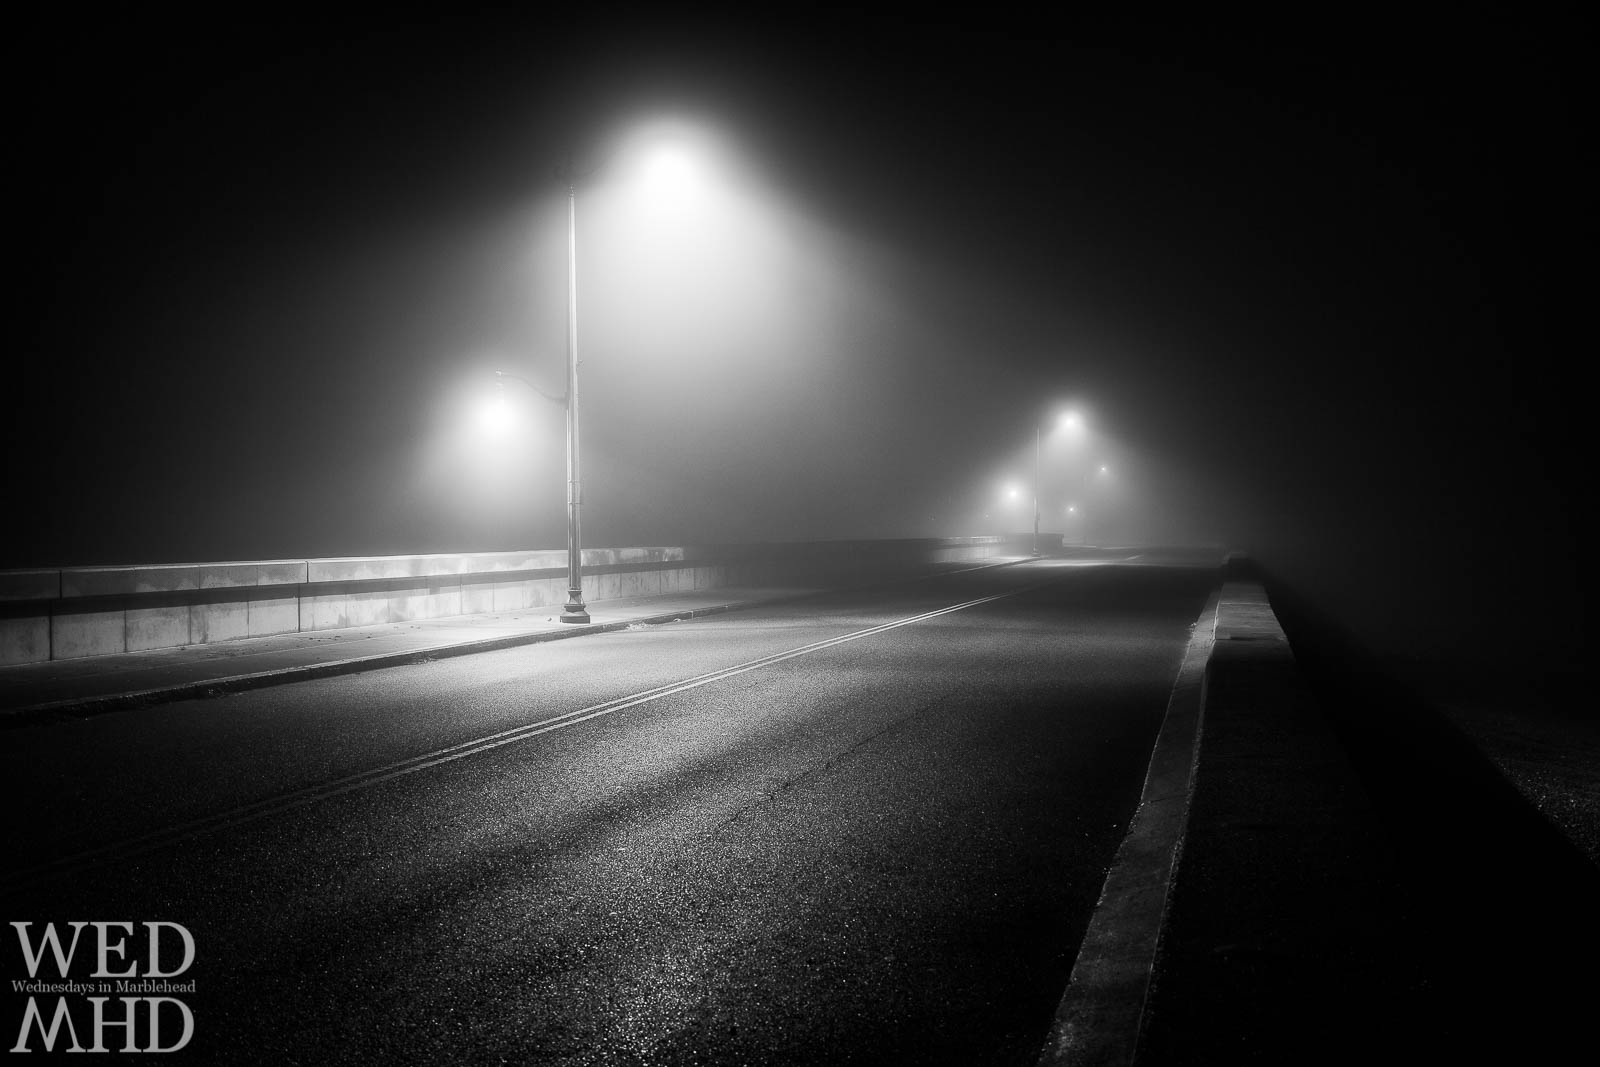 foggy night with lamp posts